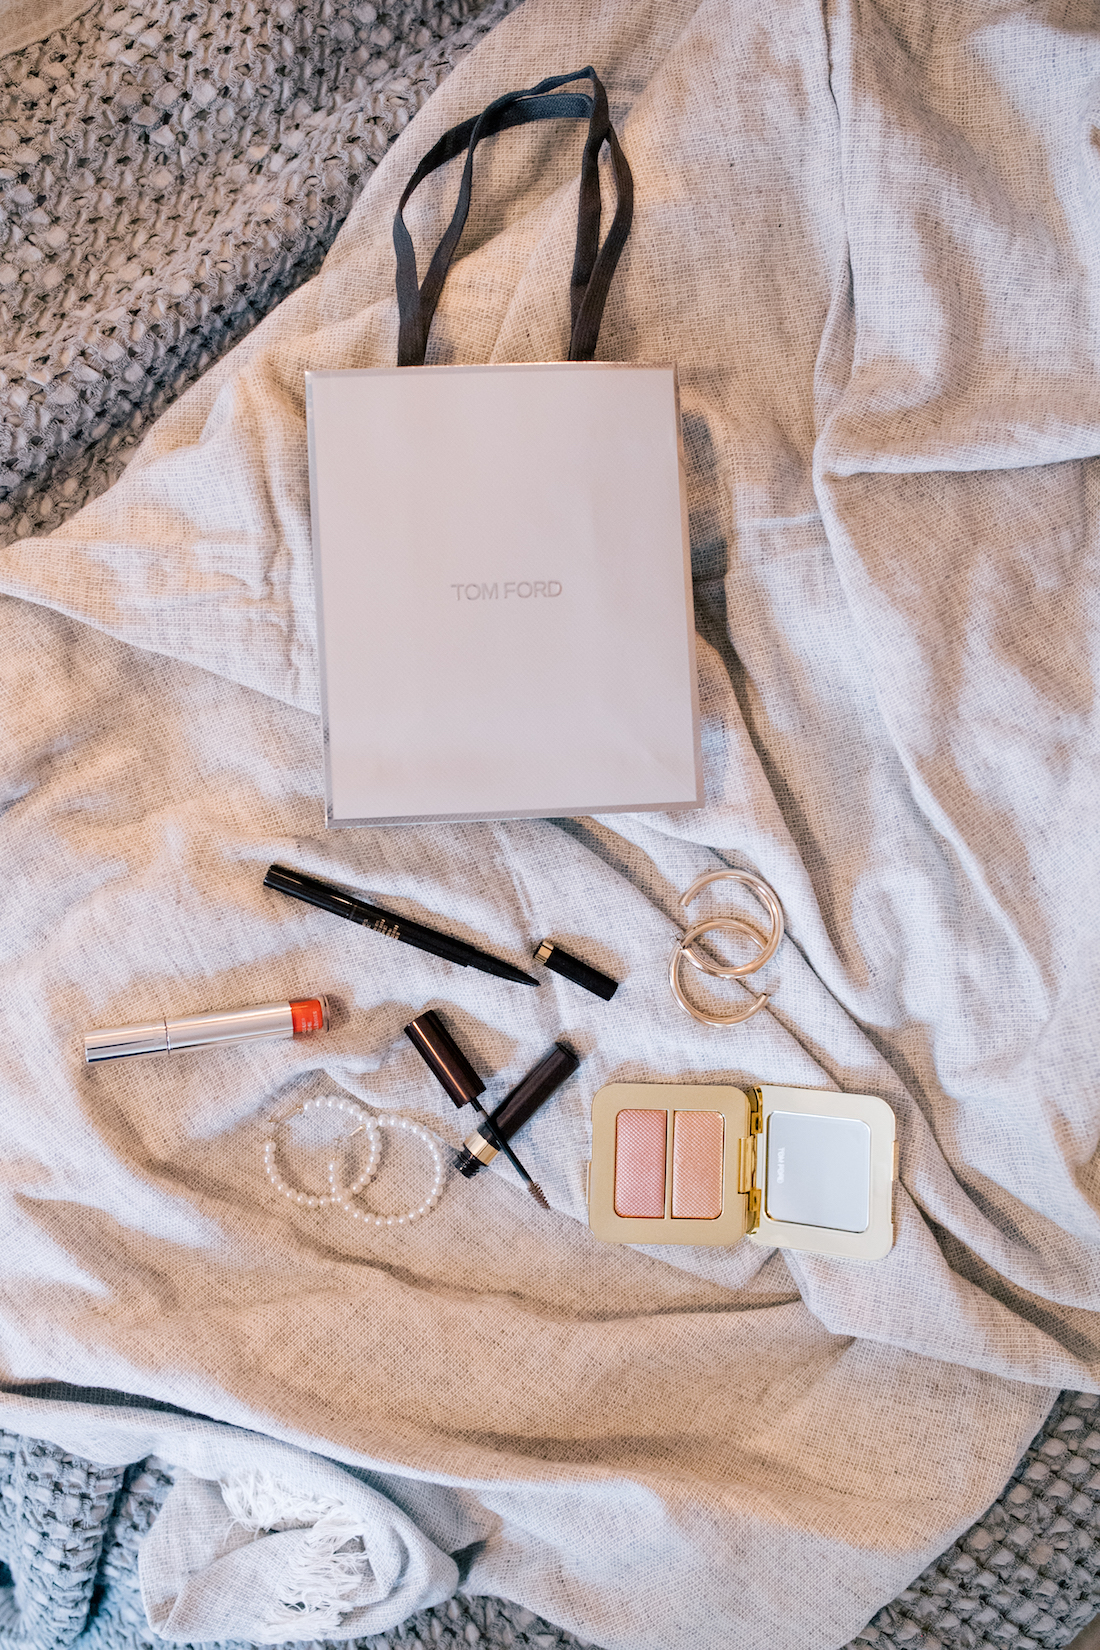 tom ford beauty bag from bloomingdale's and some makeup products on a bed